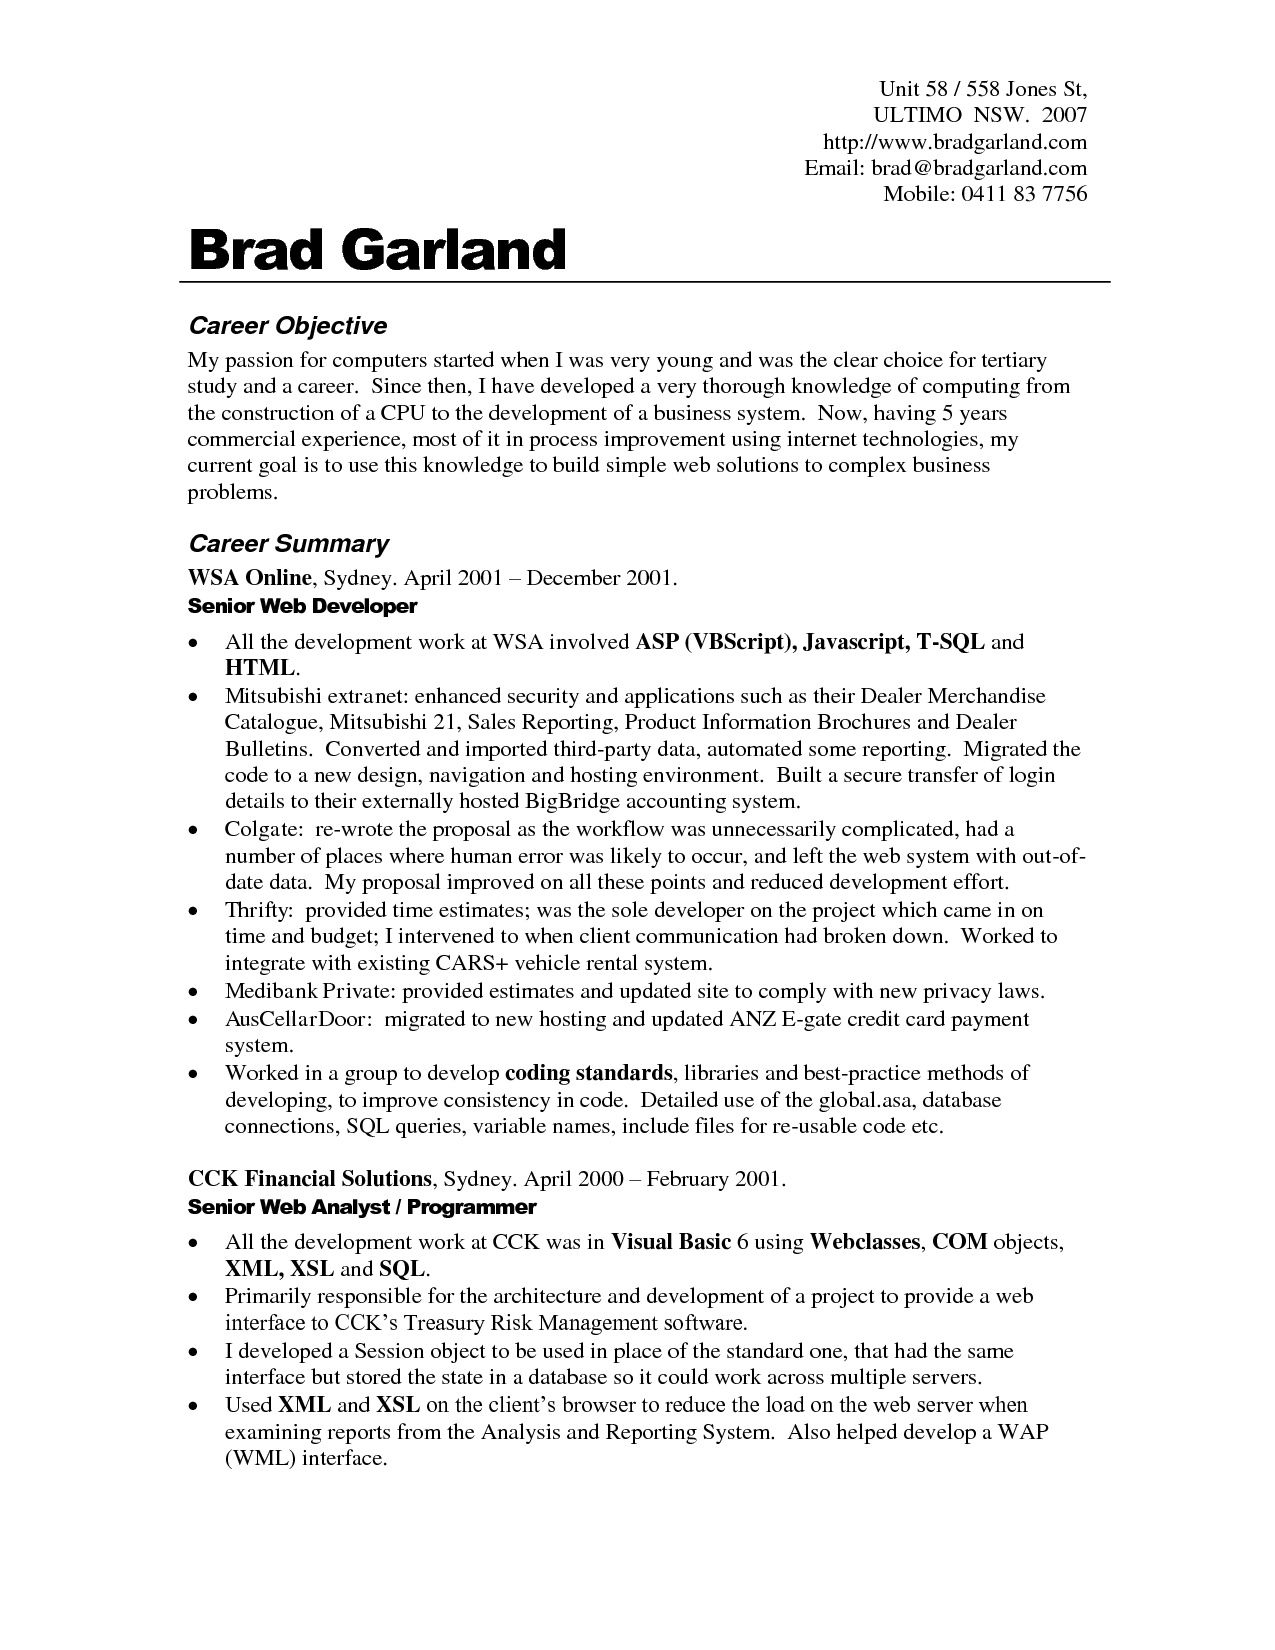 Objective Resume Examples Career Objective Resume Examples For Example Your Training Goals And